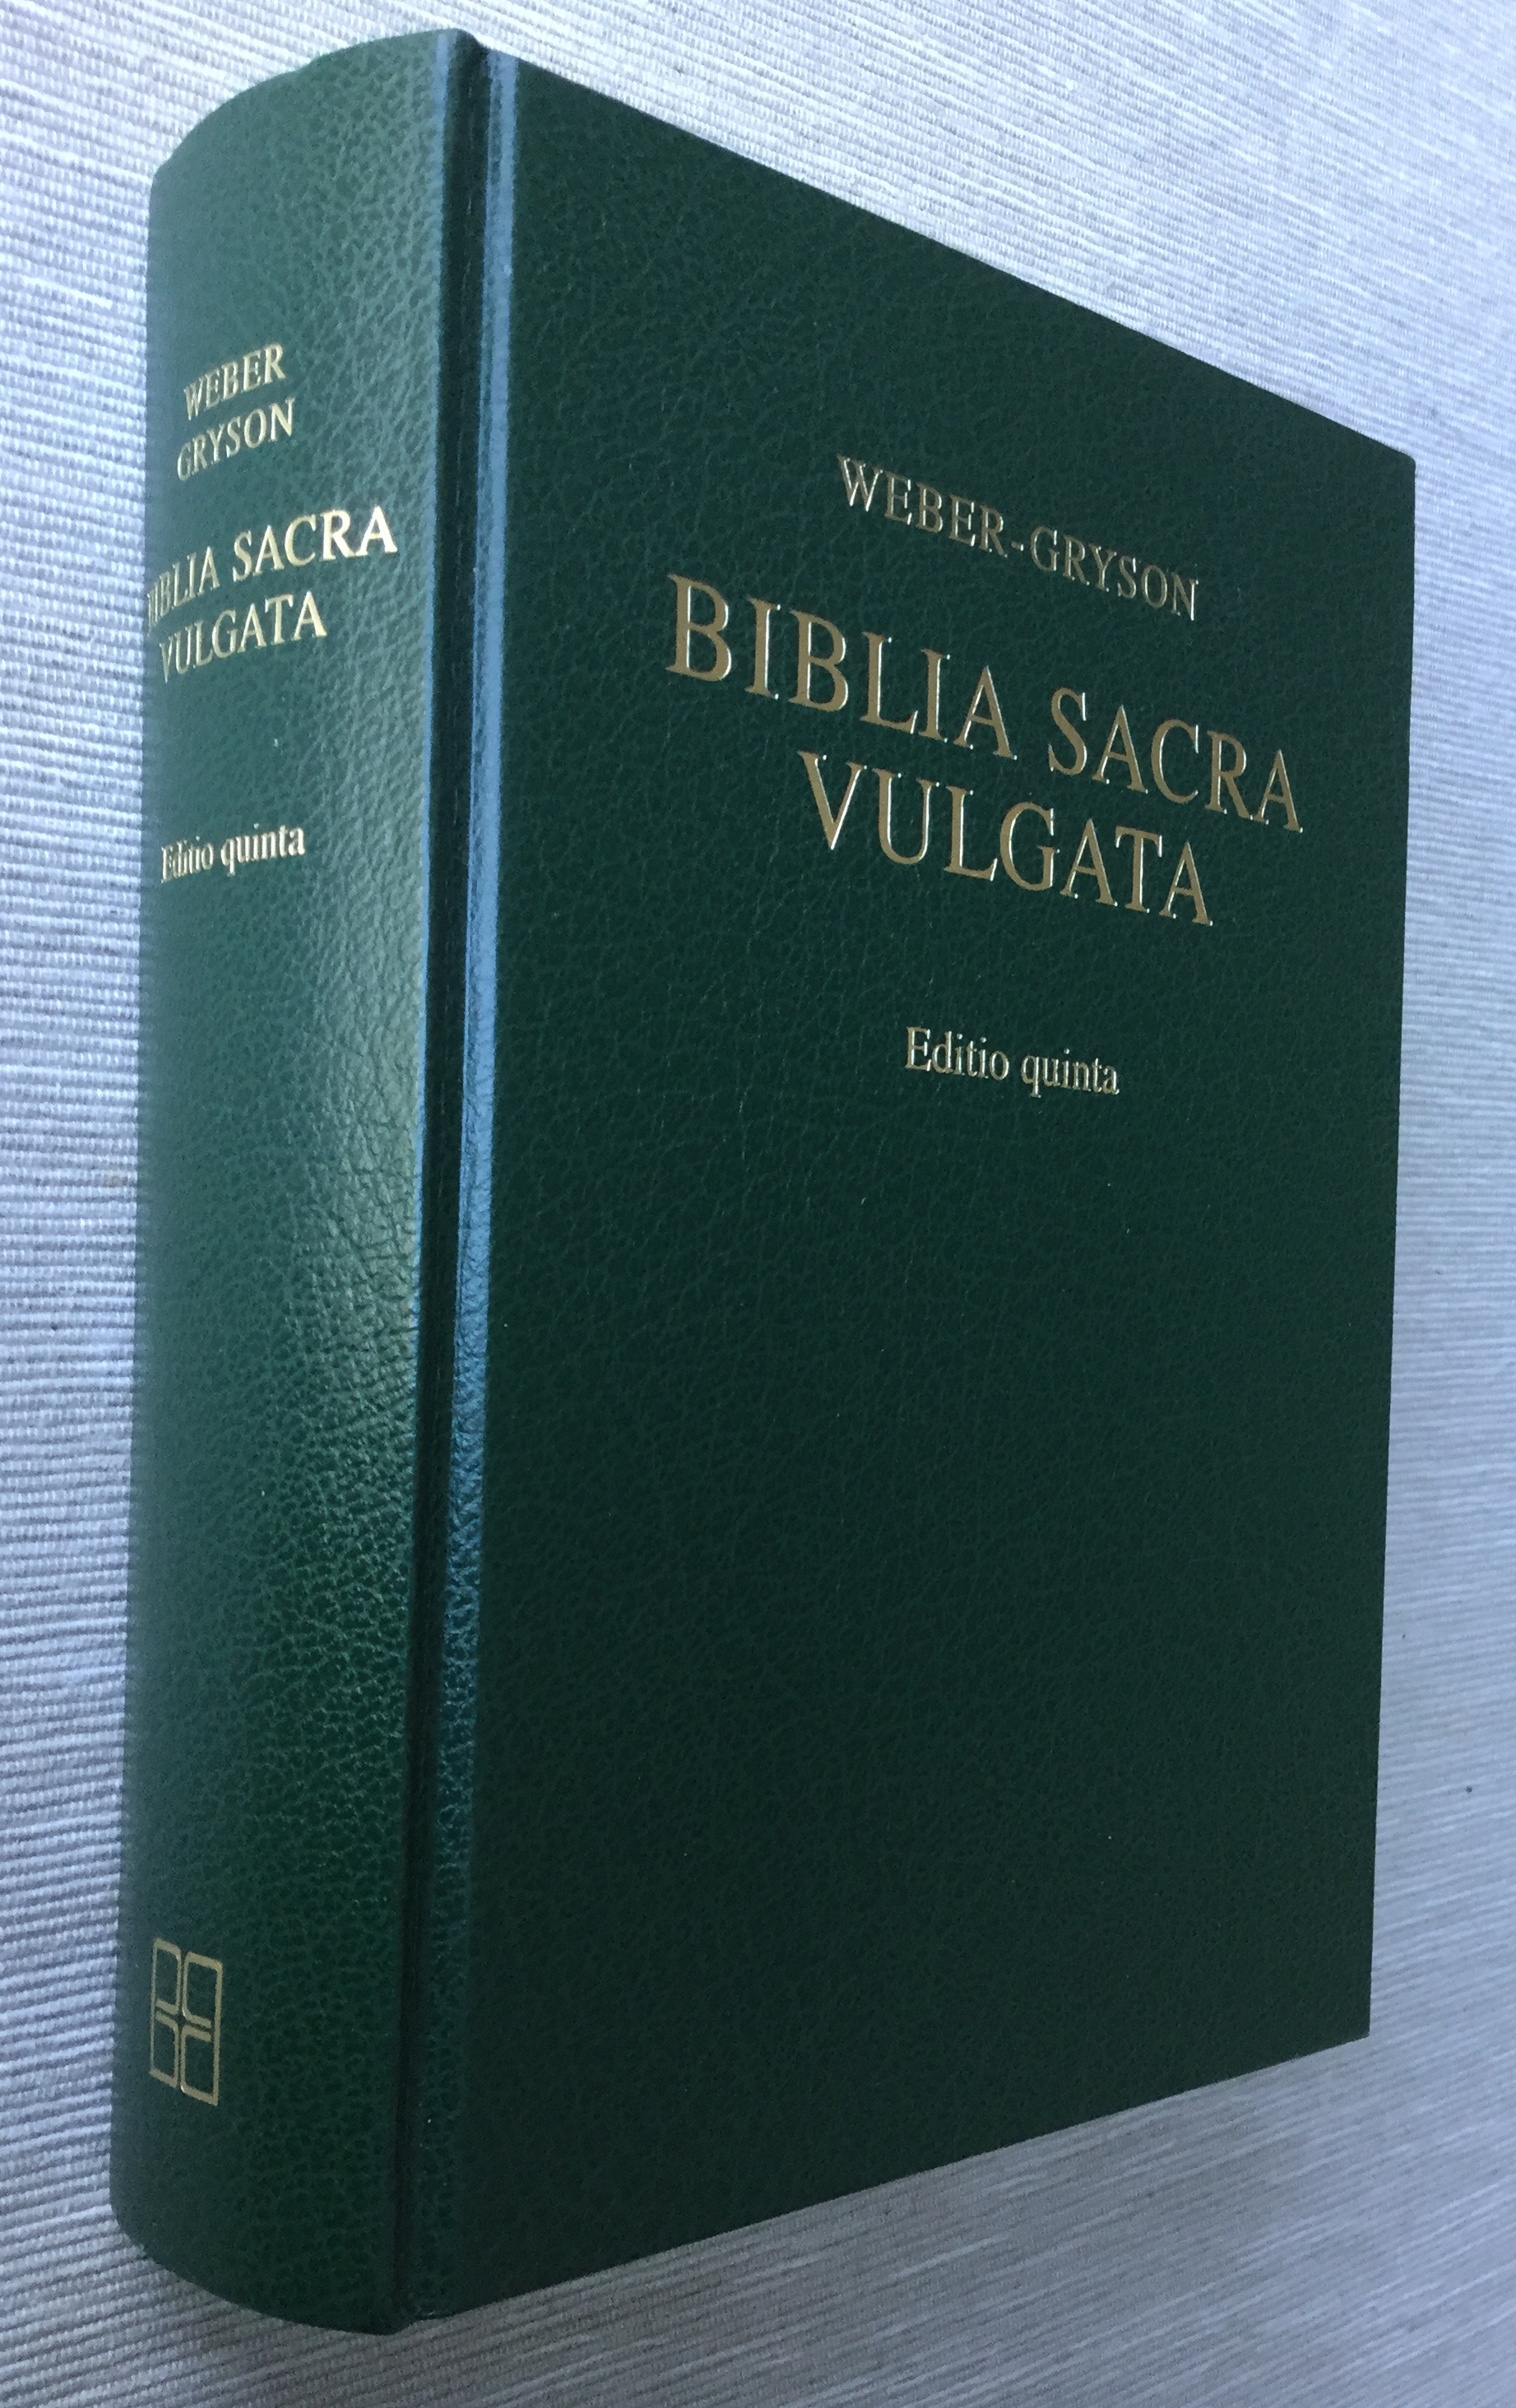 Image for Biblia Sacra Vulgata (Editio quinta) (Latin Edition)